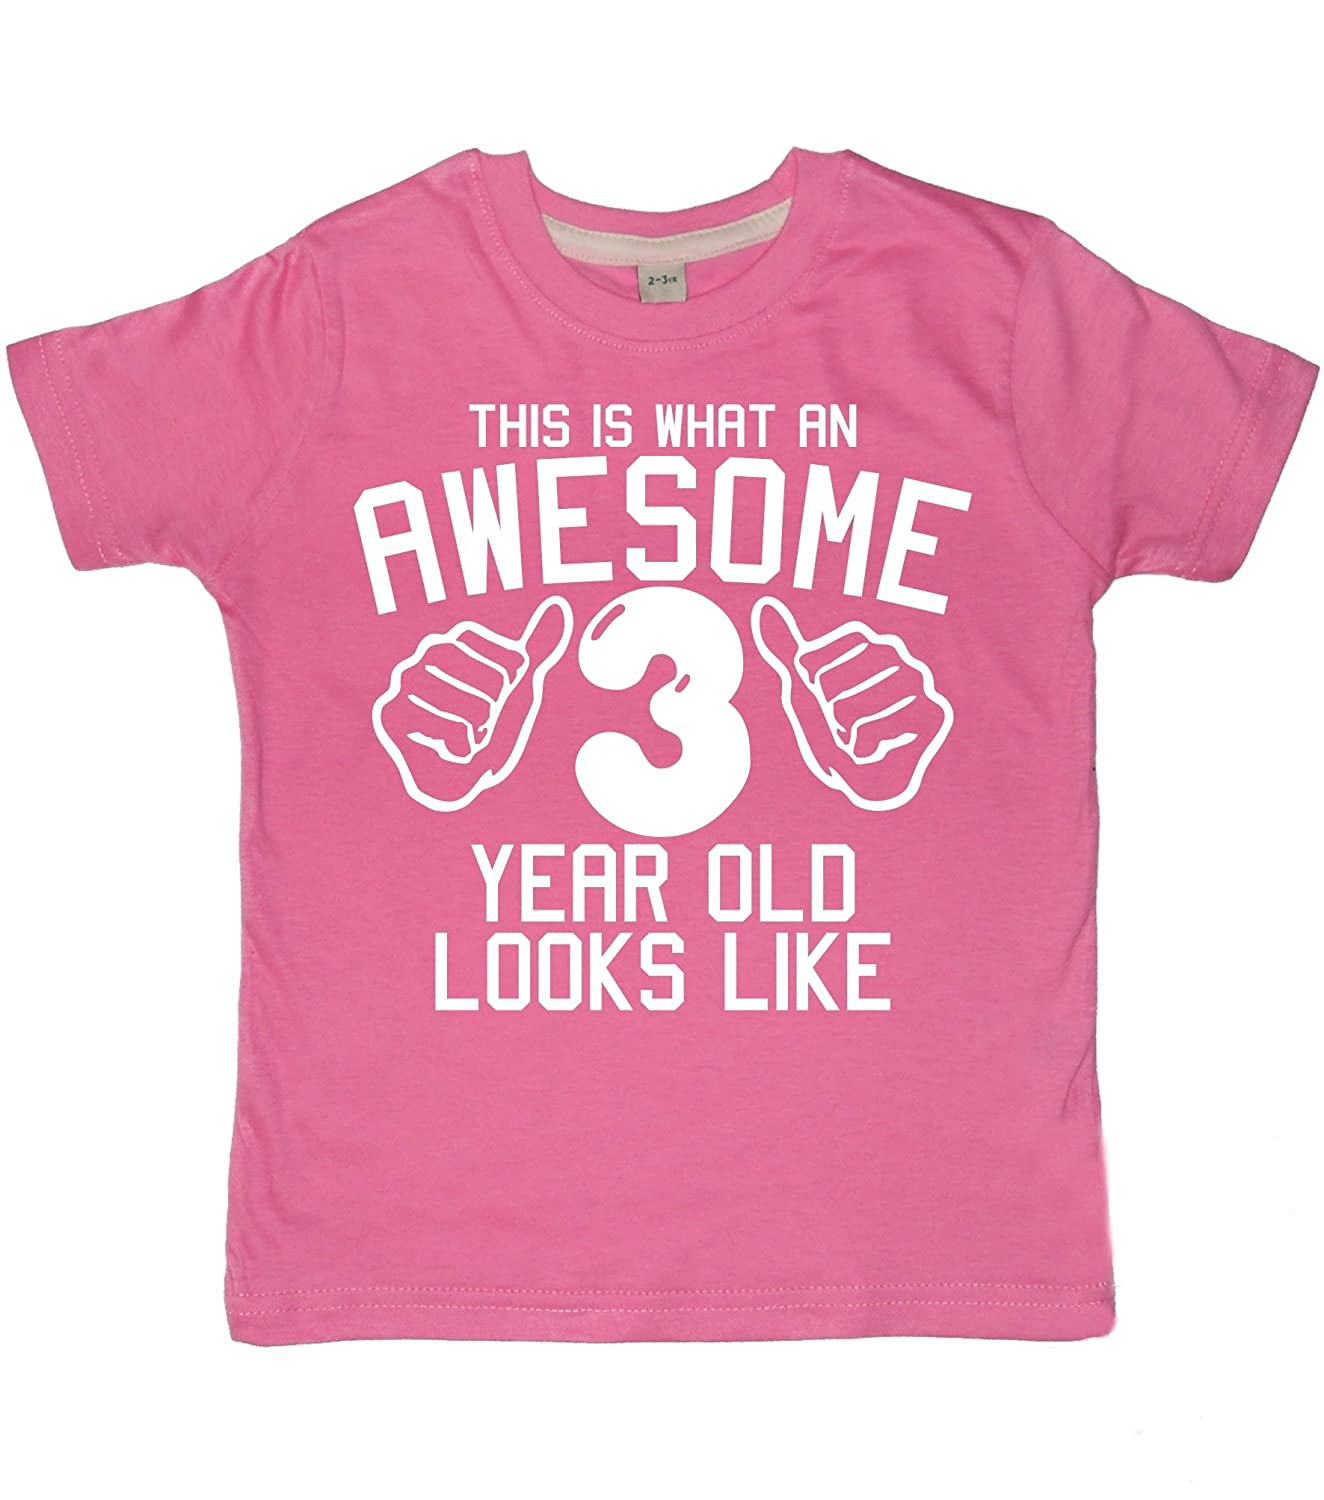 Edward Sinclair Little Girls' This is What an Awesome 3 Year Old Looks Like T-Shirt B00V3K4FDO